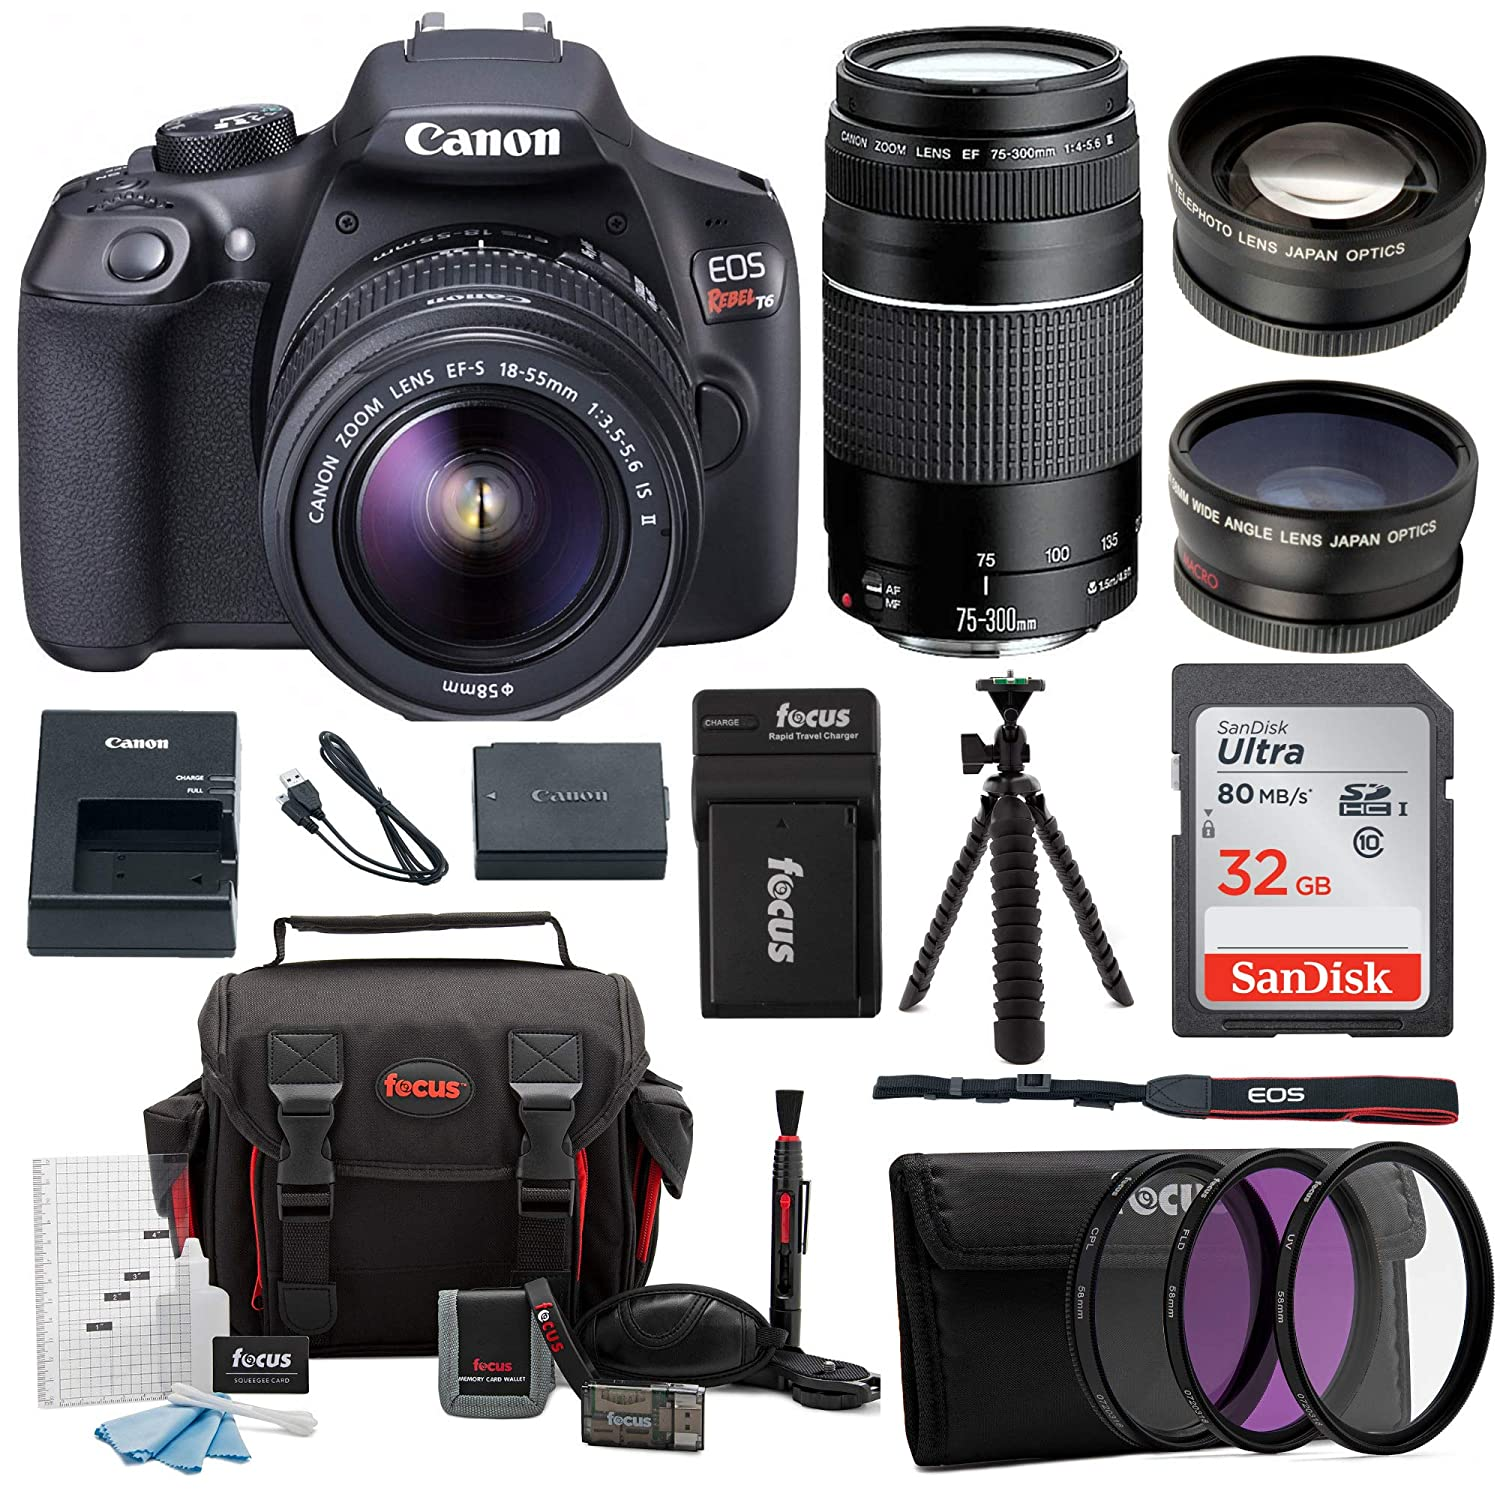 Canon EOS Rebel T6 Digital Camera: 18 Megapixel 1080p HD Video DSLR Bundle  with 18-55mm & 75-300mm Lens 32GB SD Card Tripod Filter Kit Bag & Charger -